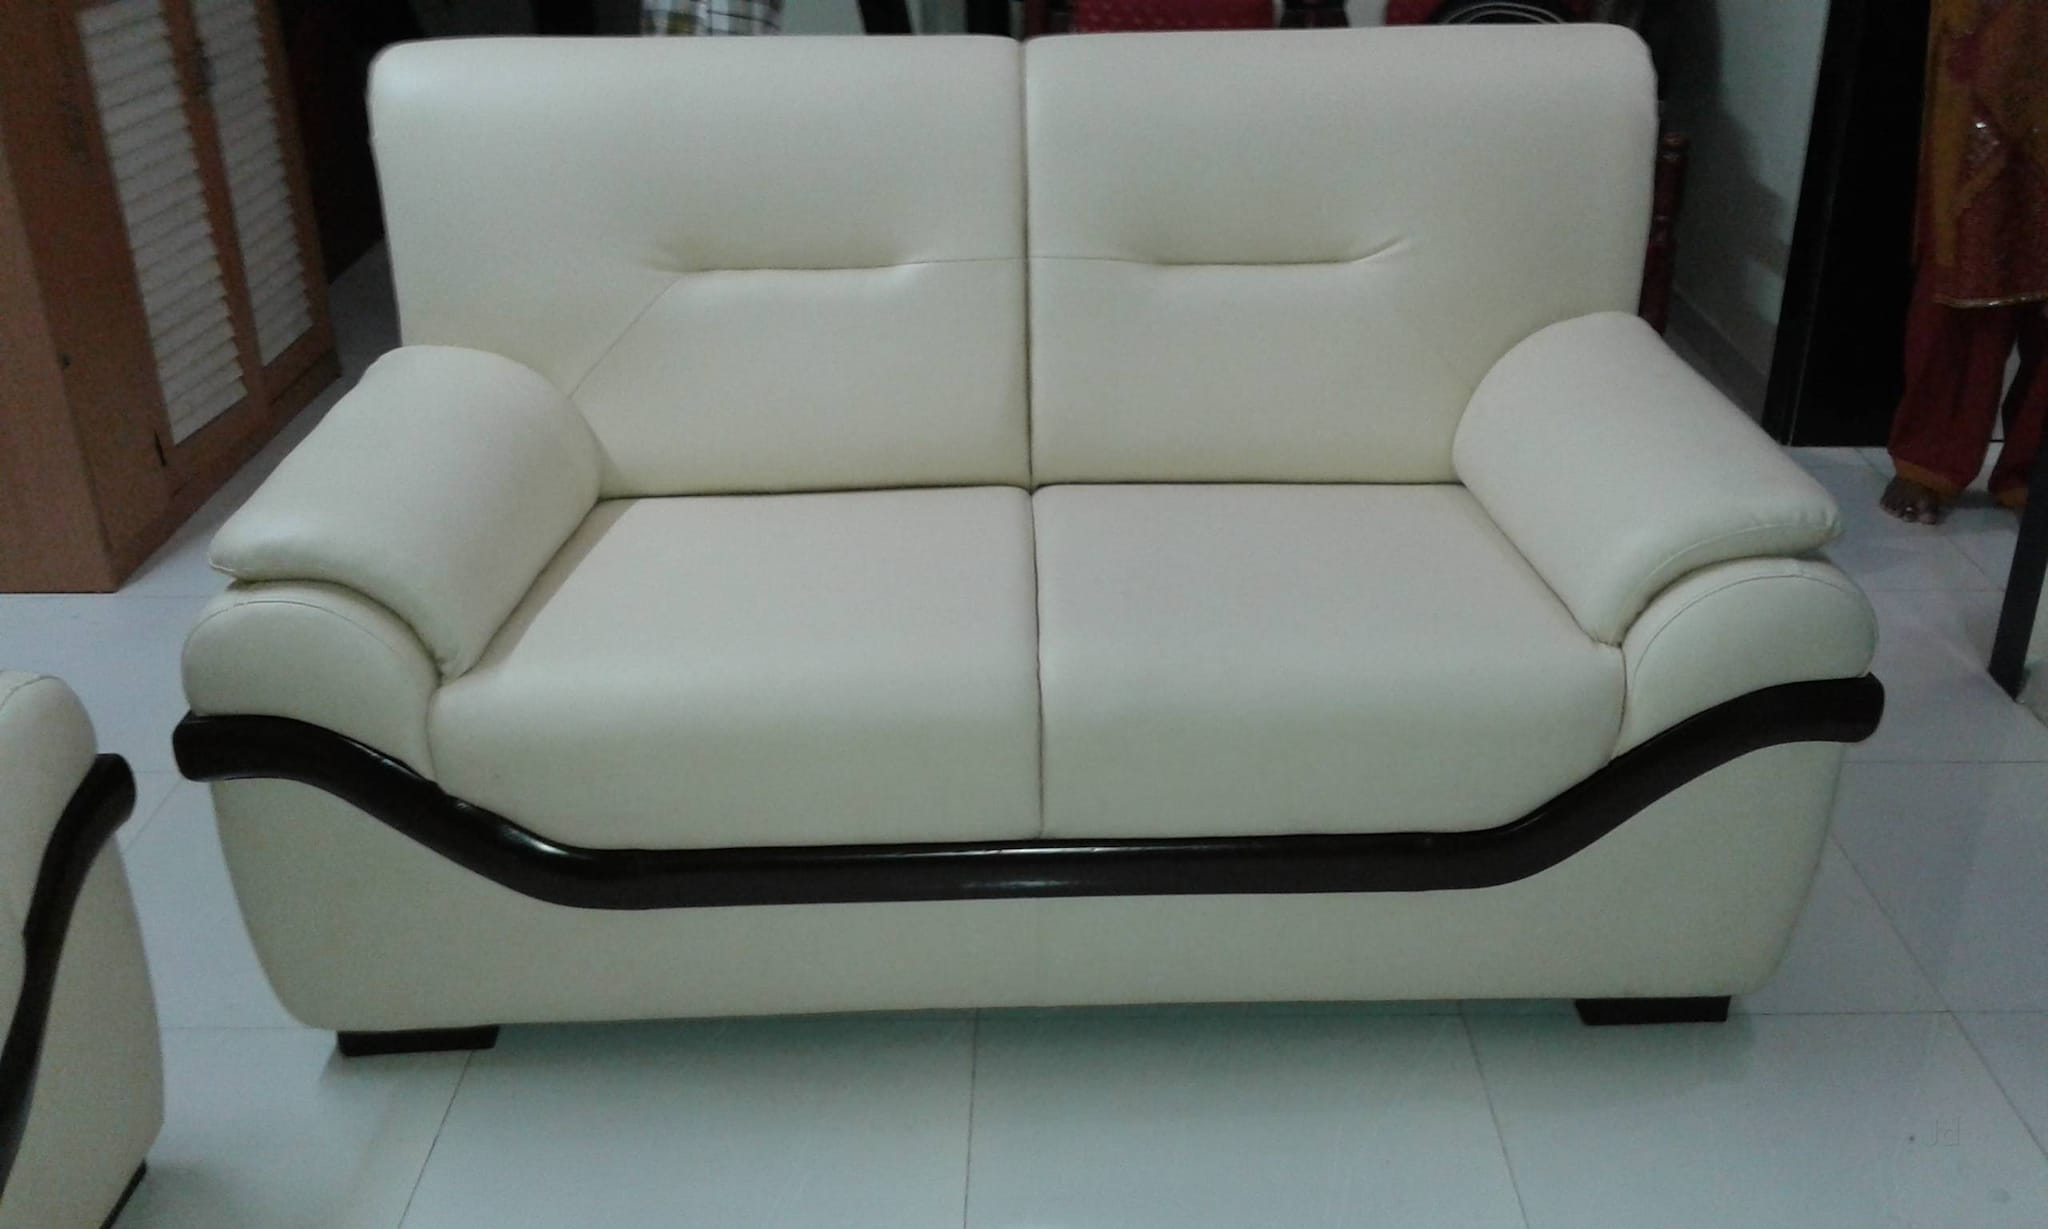 old sofa set in pune best filling for seat cushions top 100 repair shops furniture justdial services